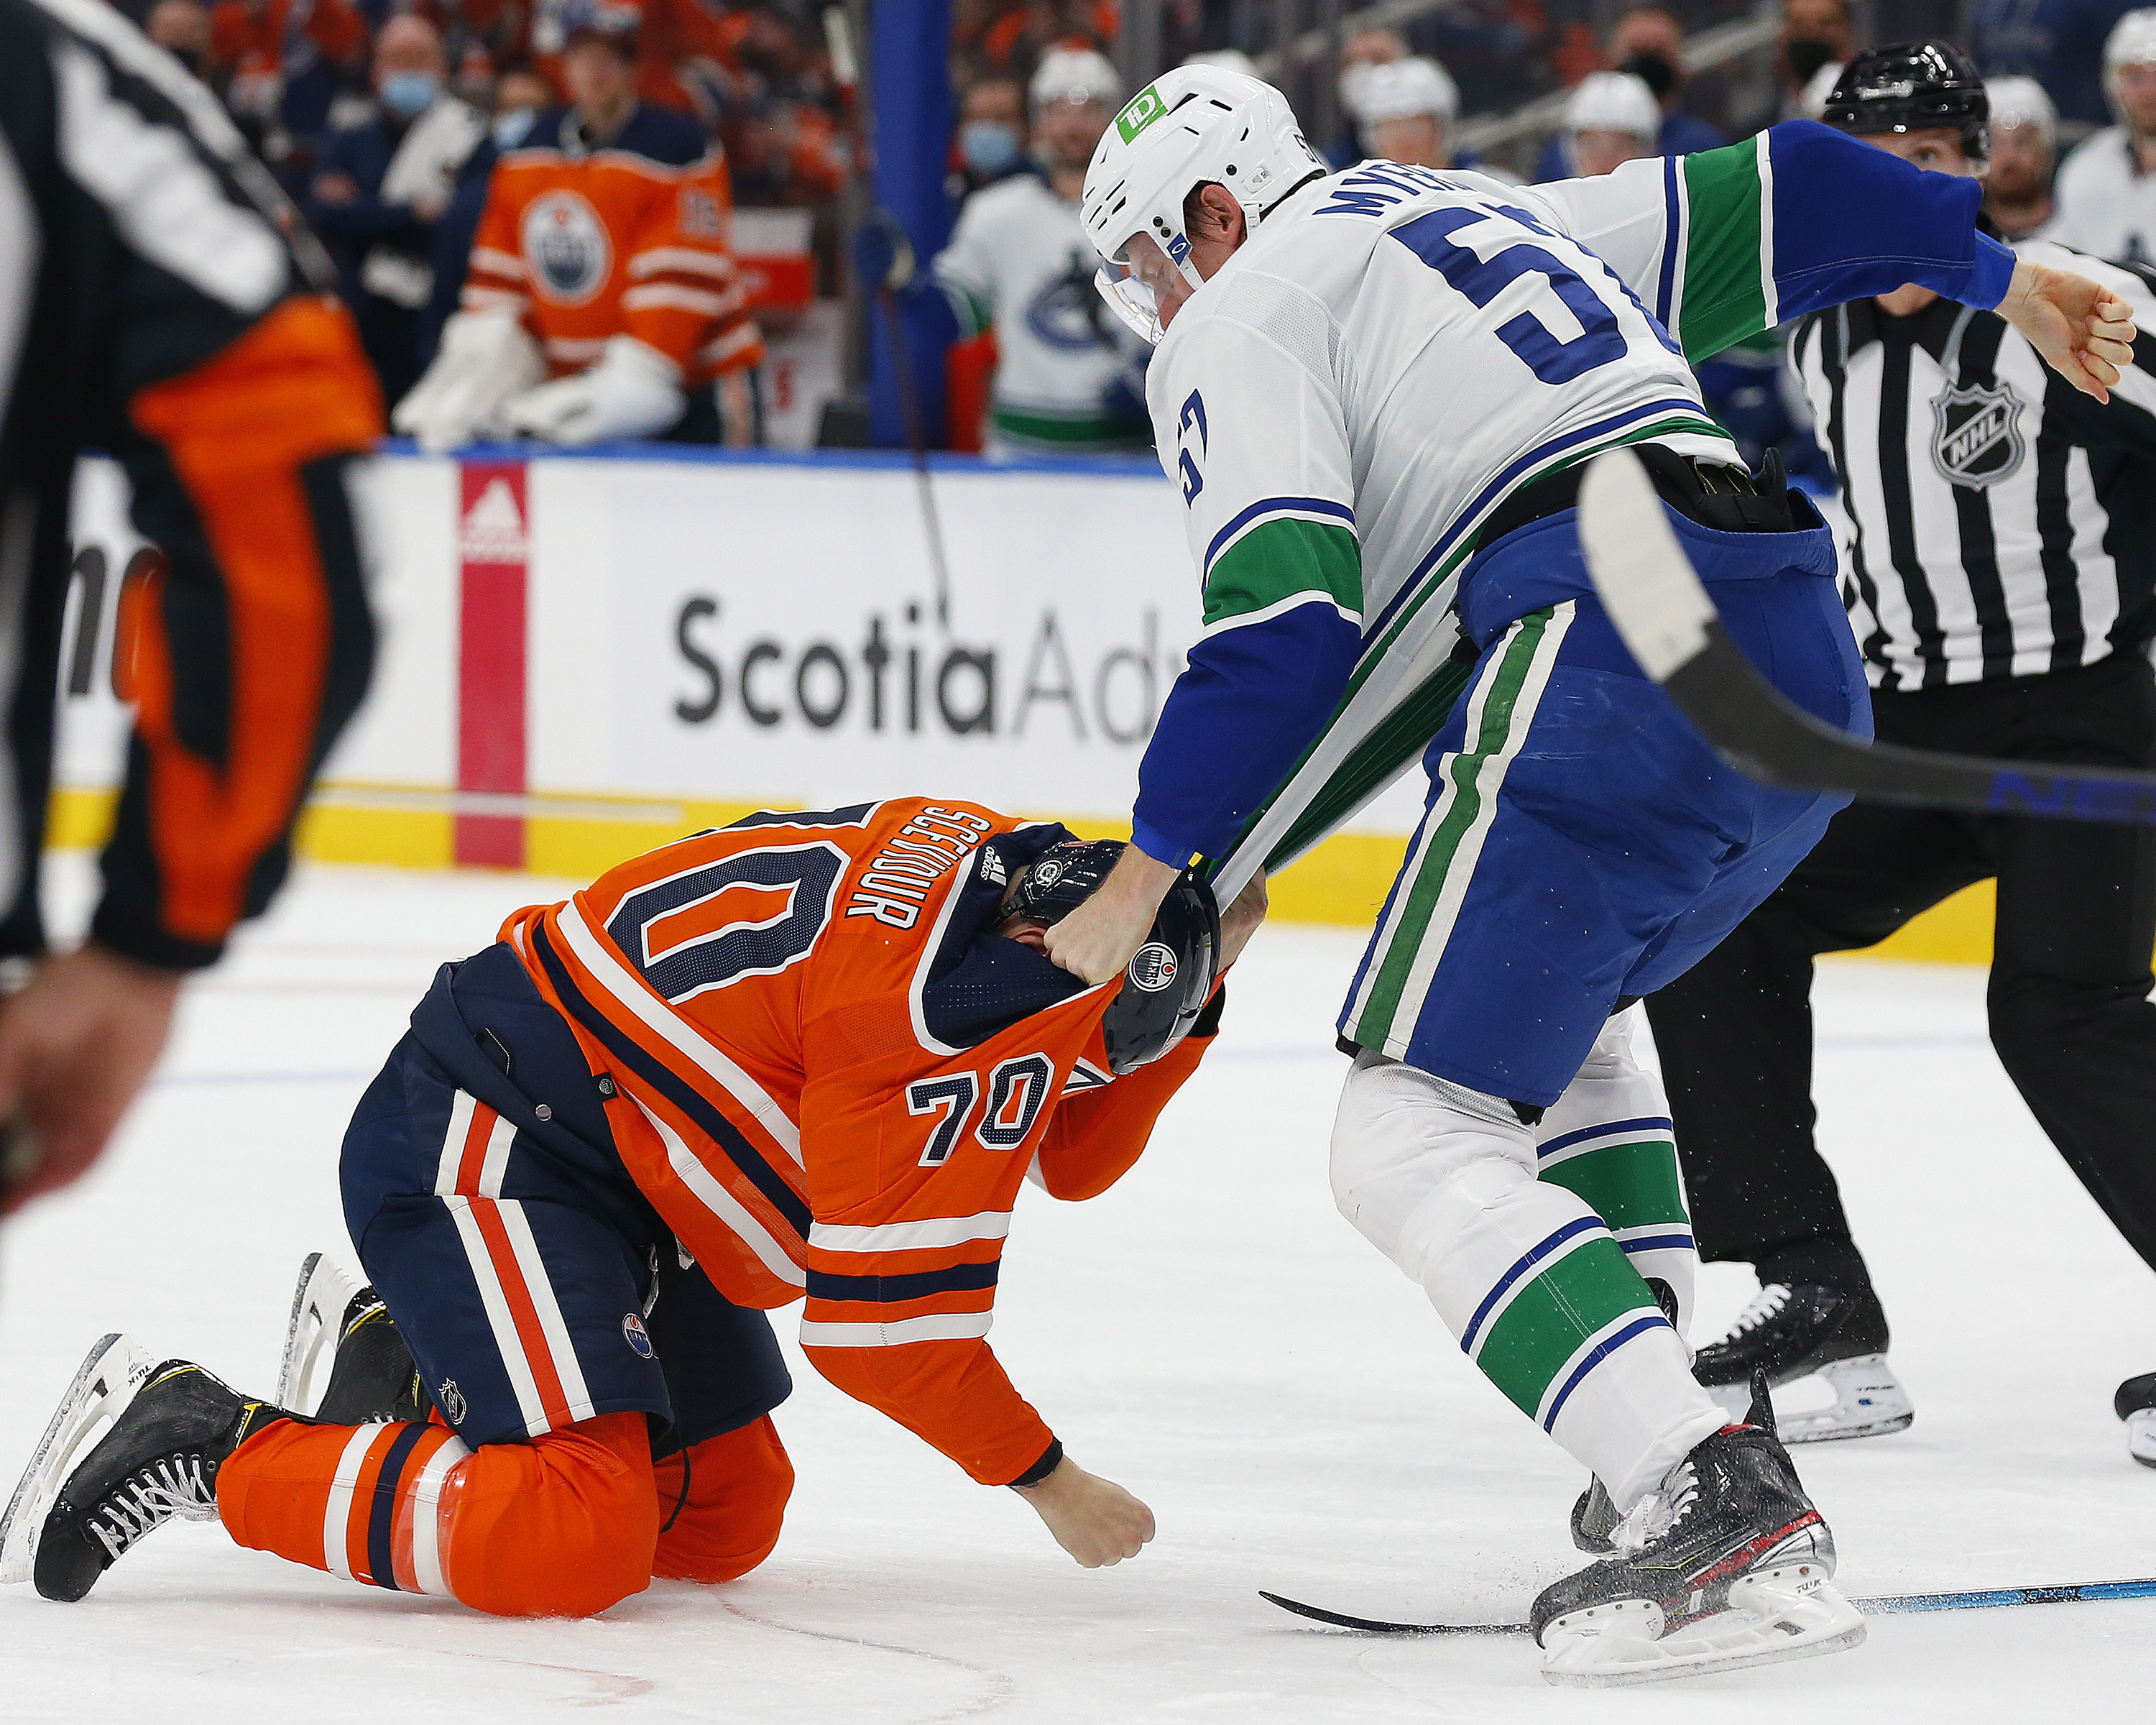 NHL: Vancouver Canucks at Edmonton Oilers